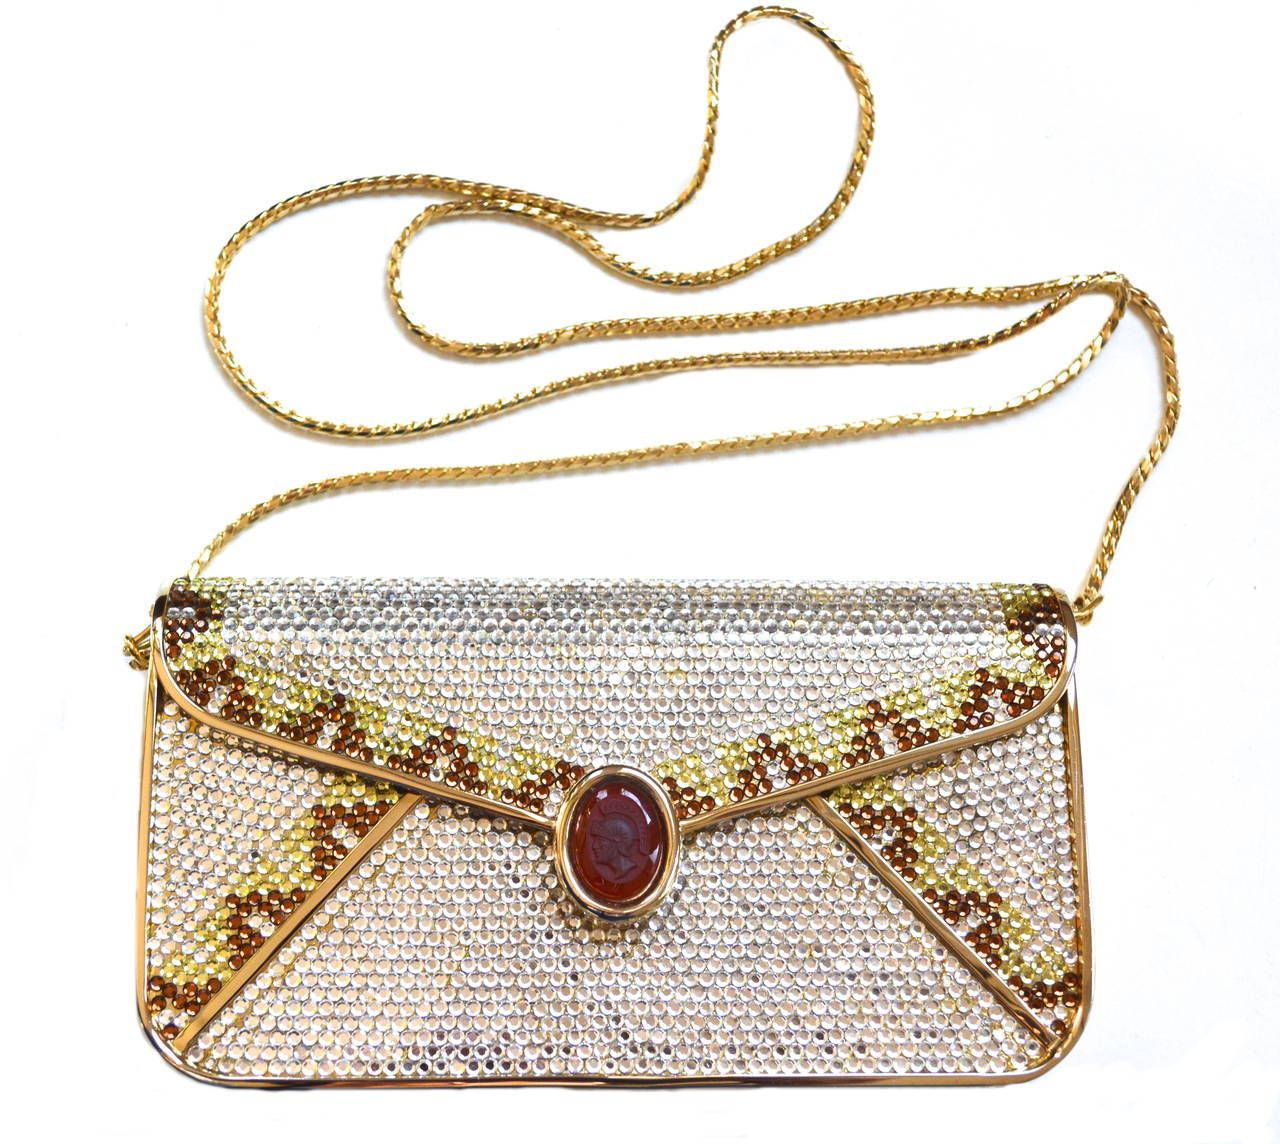 Circa 1970s glam Swarovski crystal and carnelian intaglio clutch with snake chain adjustable strap.  Signed inside. Gold lining is clean. Amazing red carpet or party bag option.  Unique detailing and quality construction.  Measures 7″ long X 4″